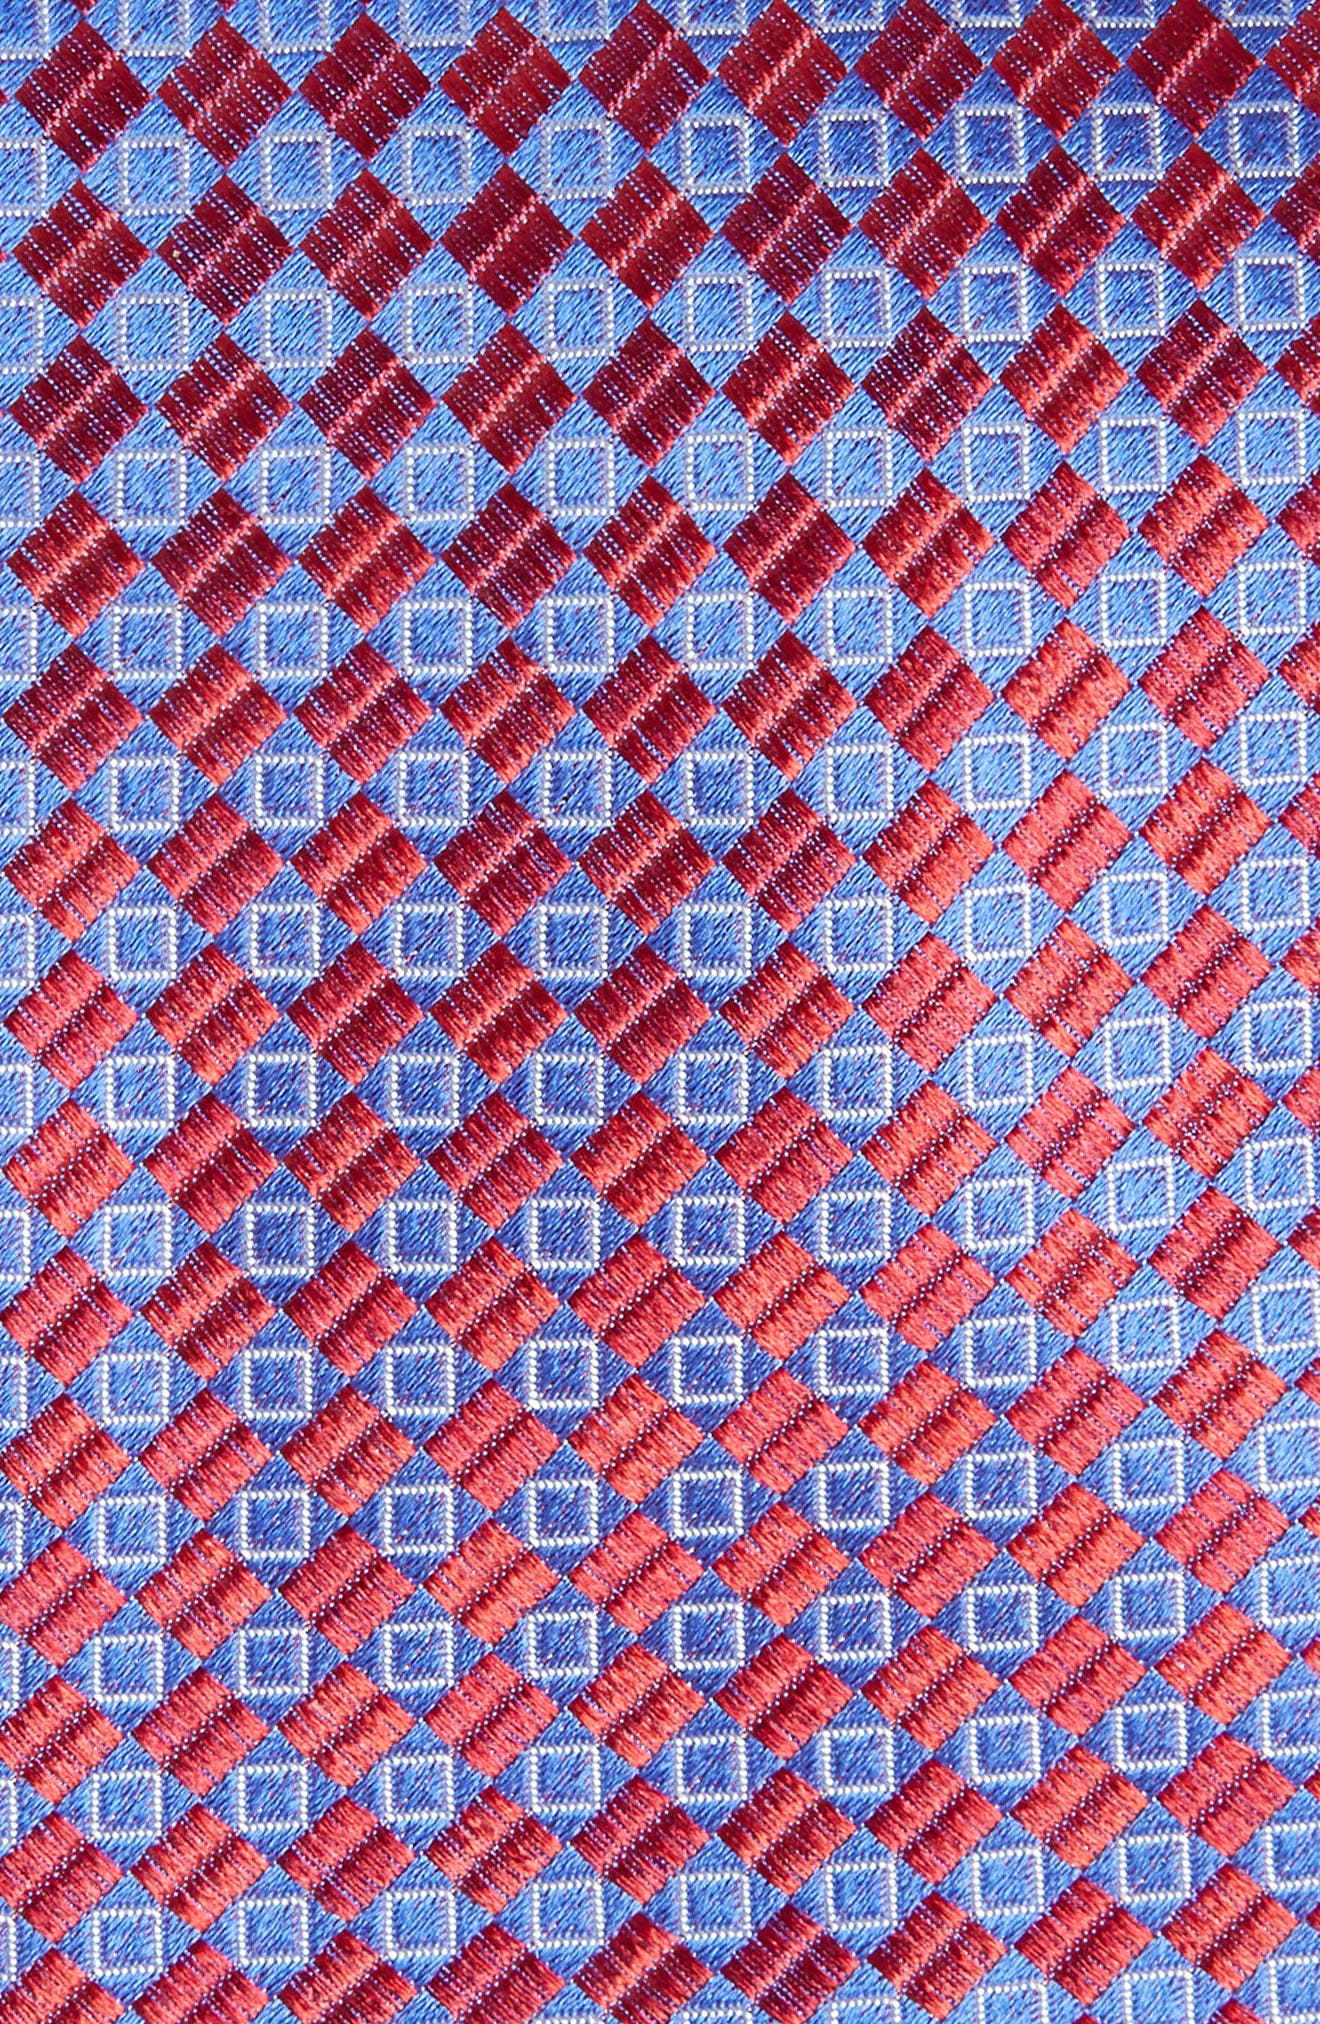 Middletown Geometric Silk Tie,                             Alternate thumbnail 2, color,                             Red Fashion